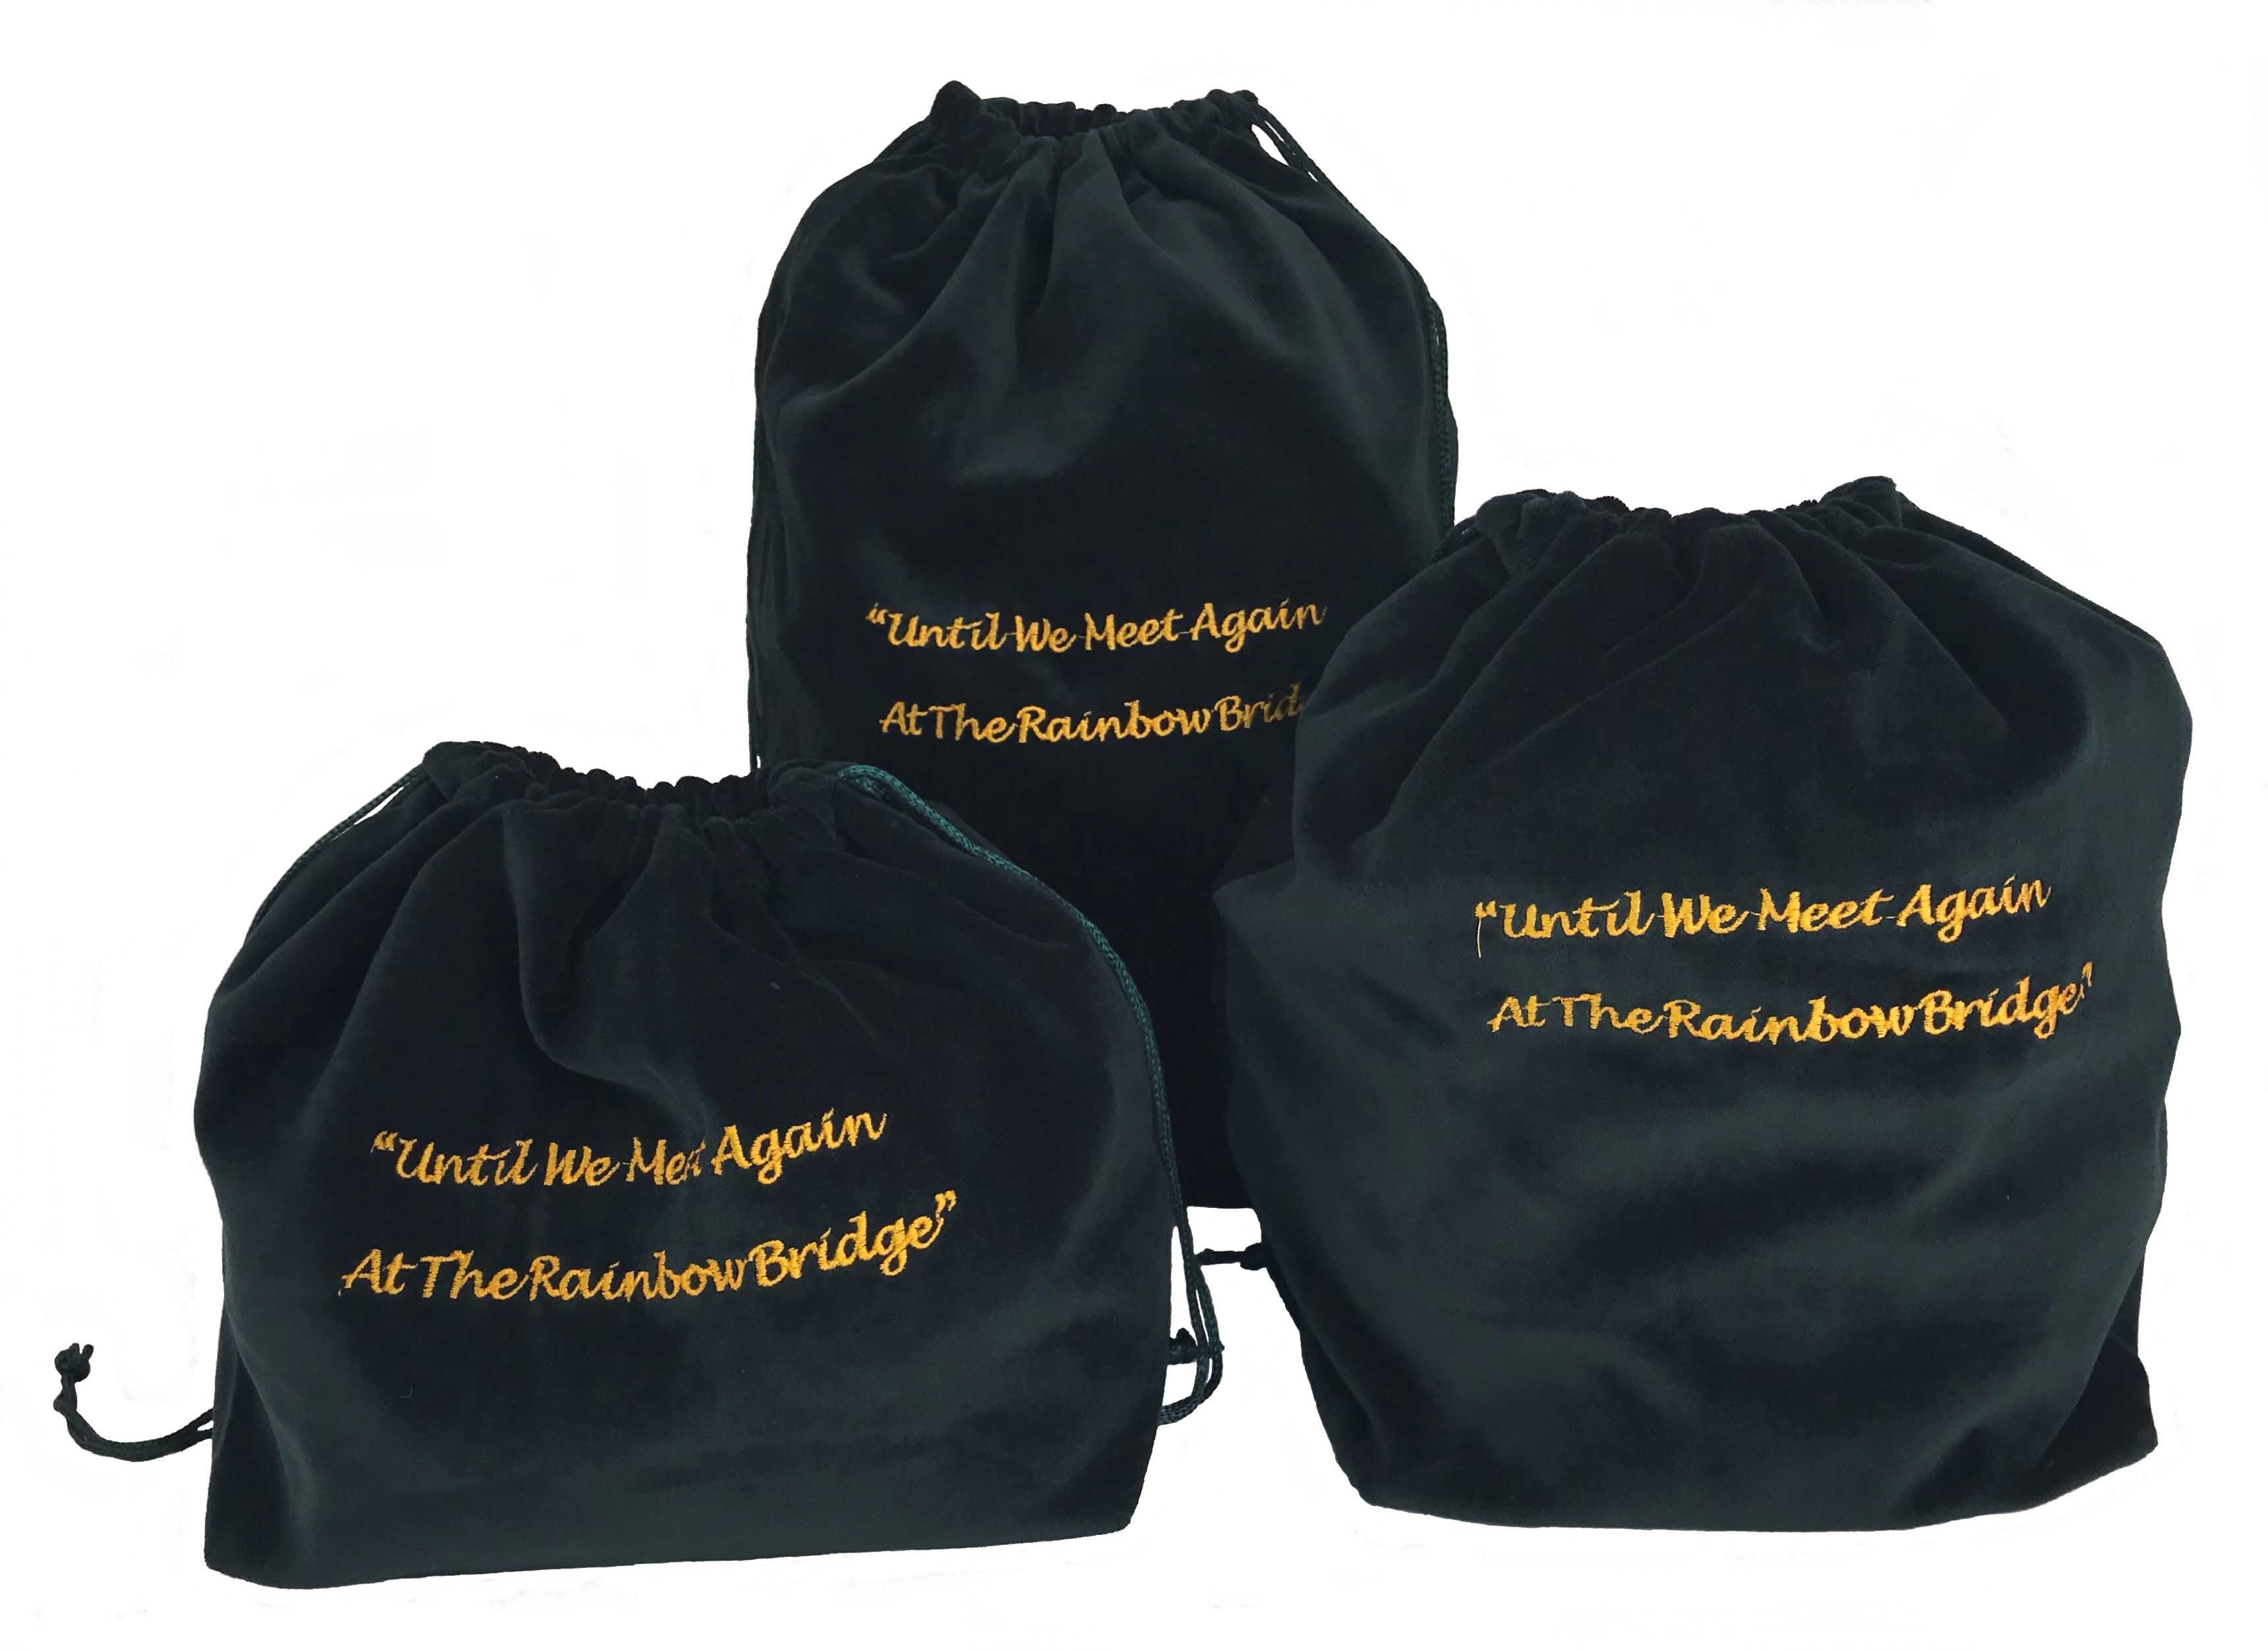 10 x Gusseted Urn Bags - Green (Rainbow Bridge)